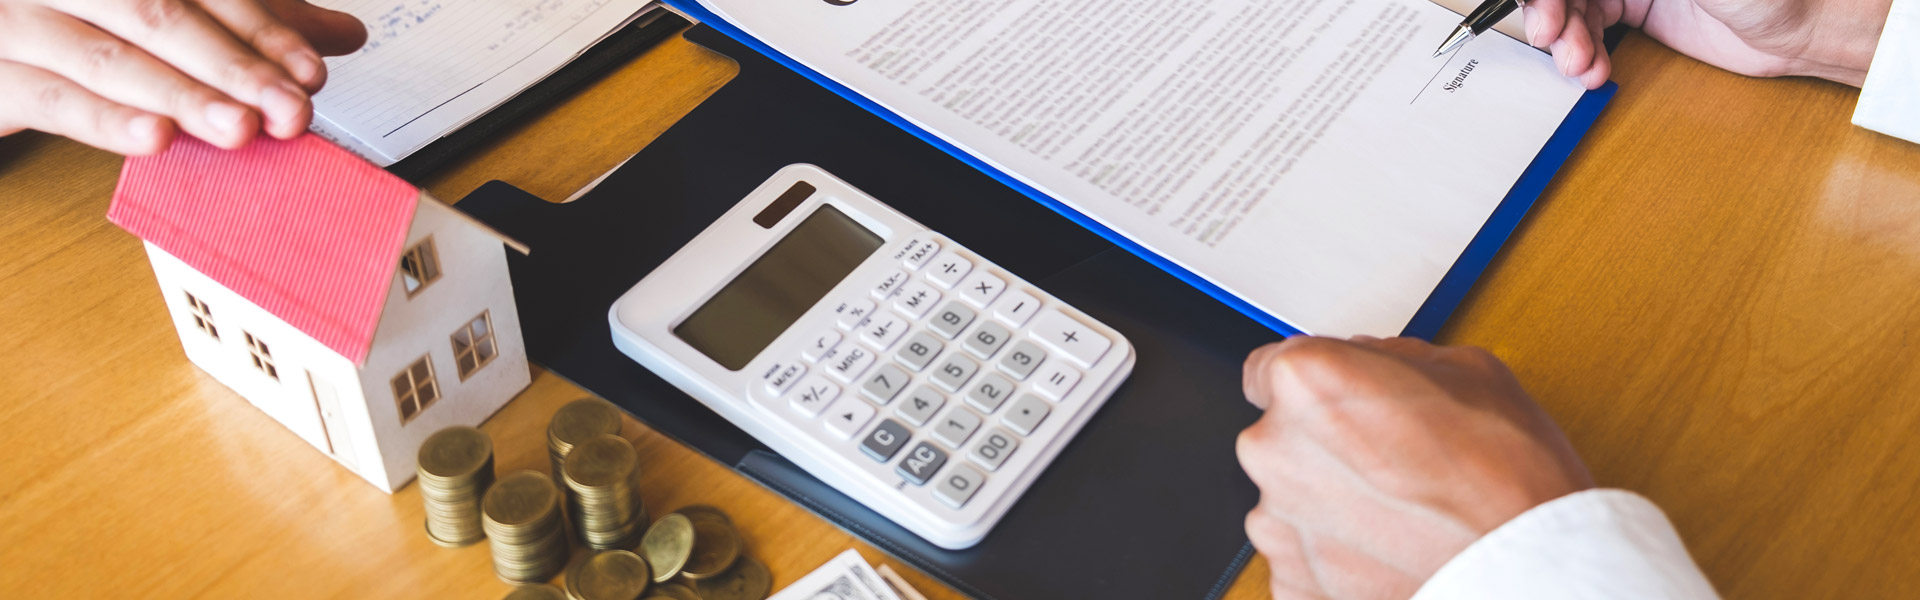 calculator, coins, and a small model home on a desk